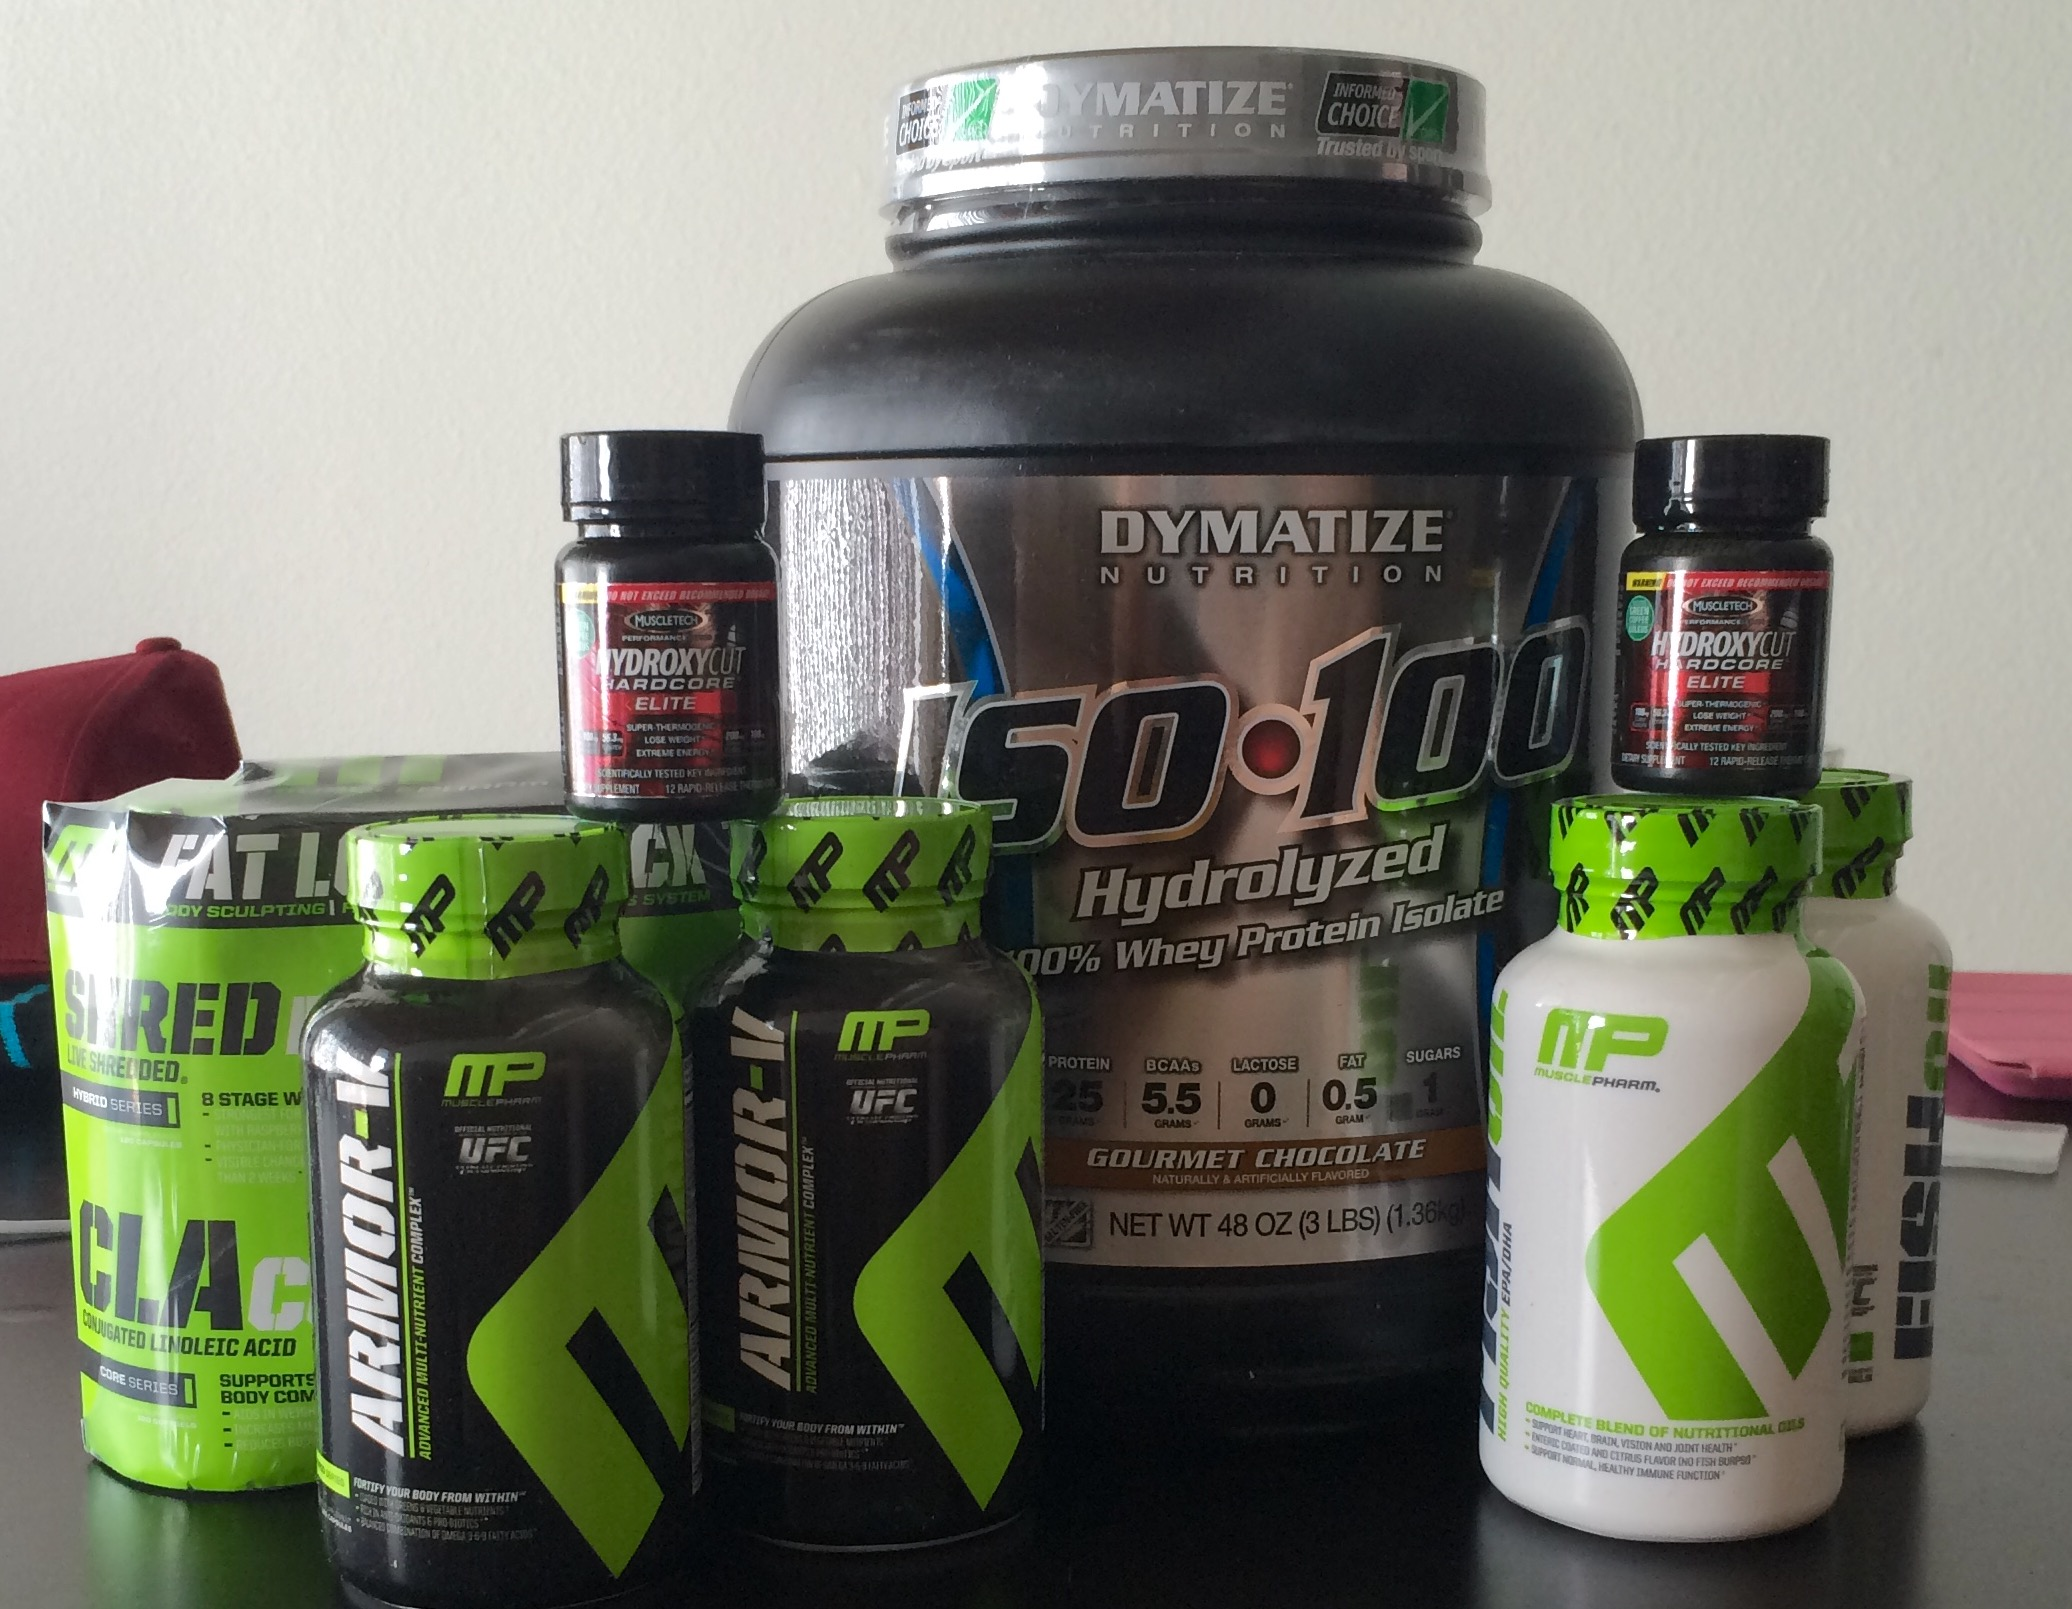 alafitness supplements whey protein Hollywood personal trainer Dymatize MusclePharm fat burner